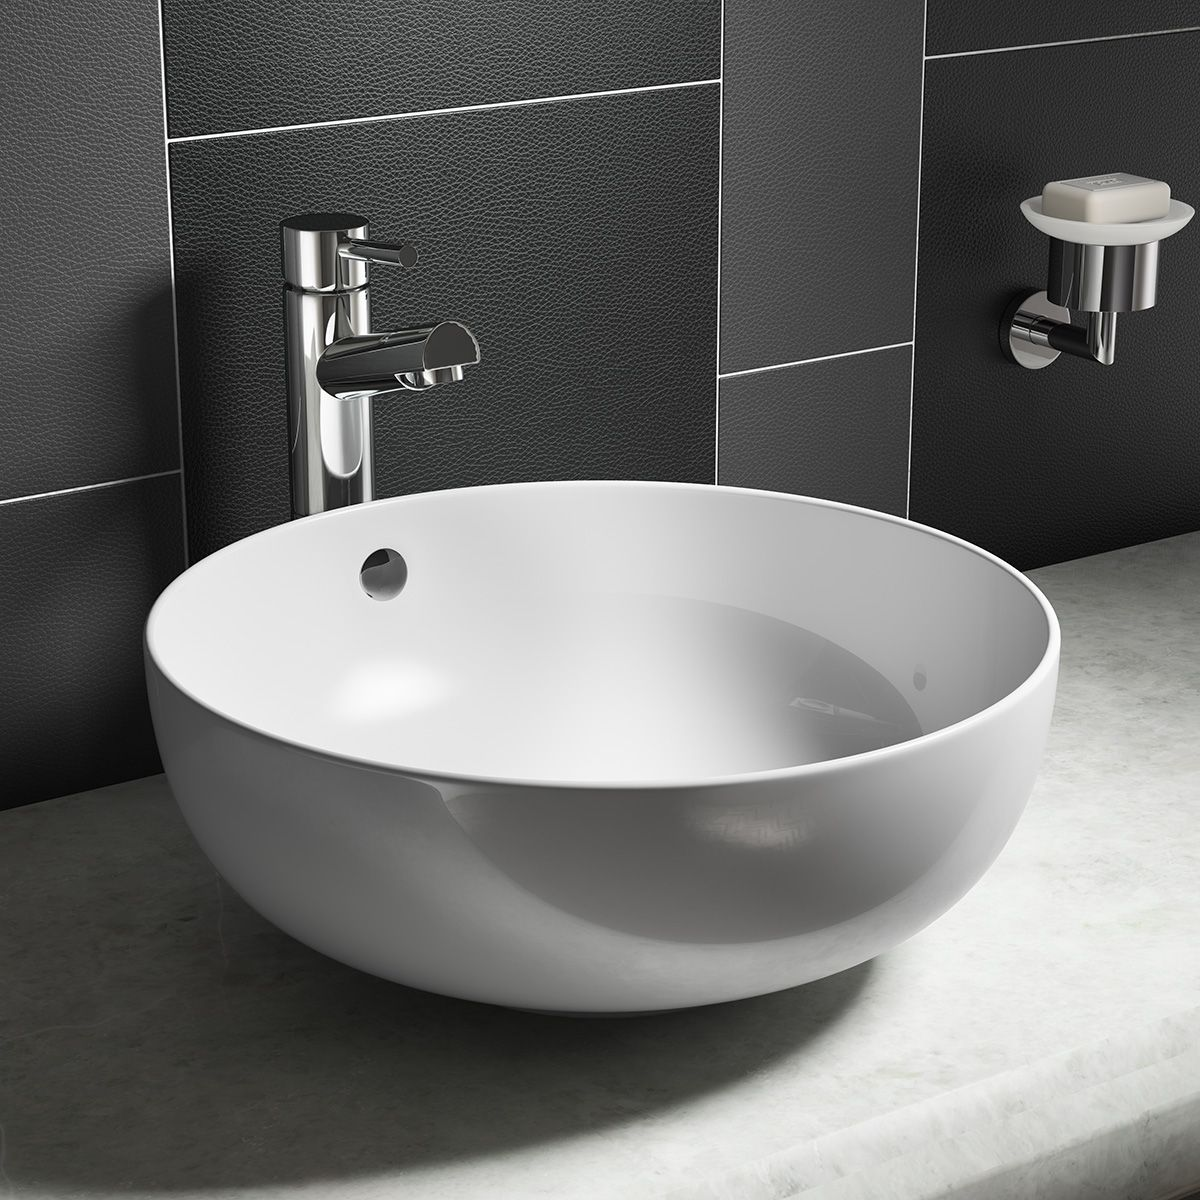 Aquabro Round Counter Top Vessel Basin Sinks Taps Com